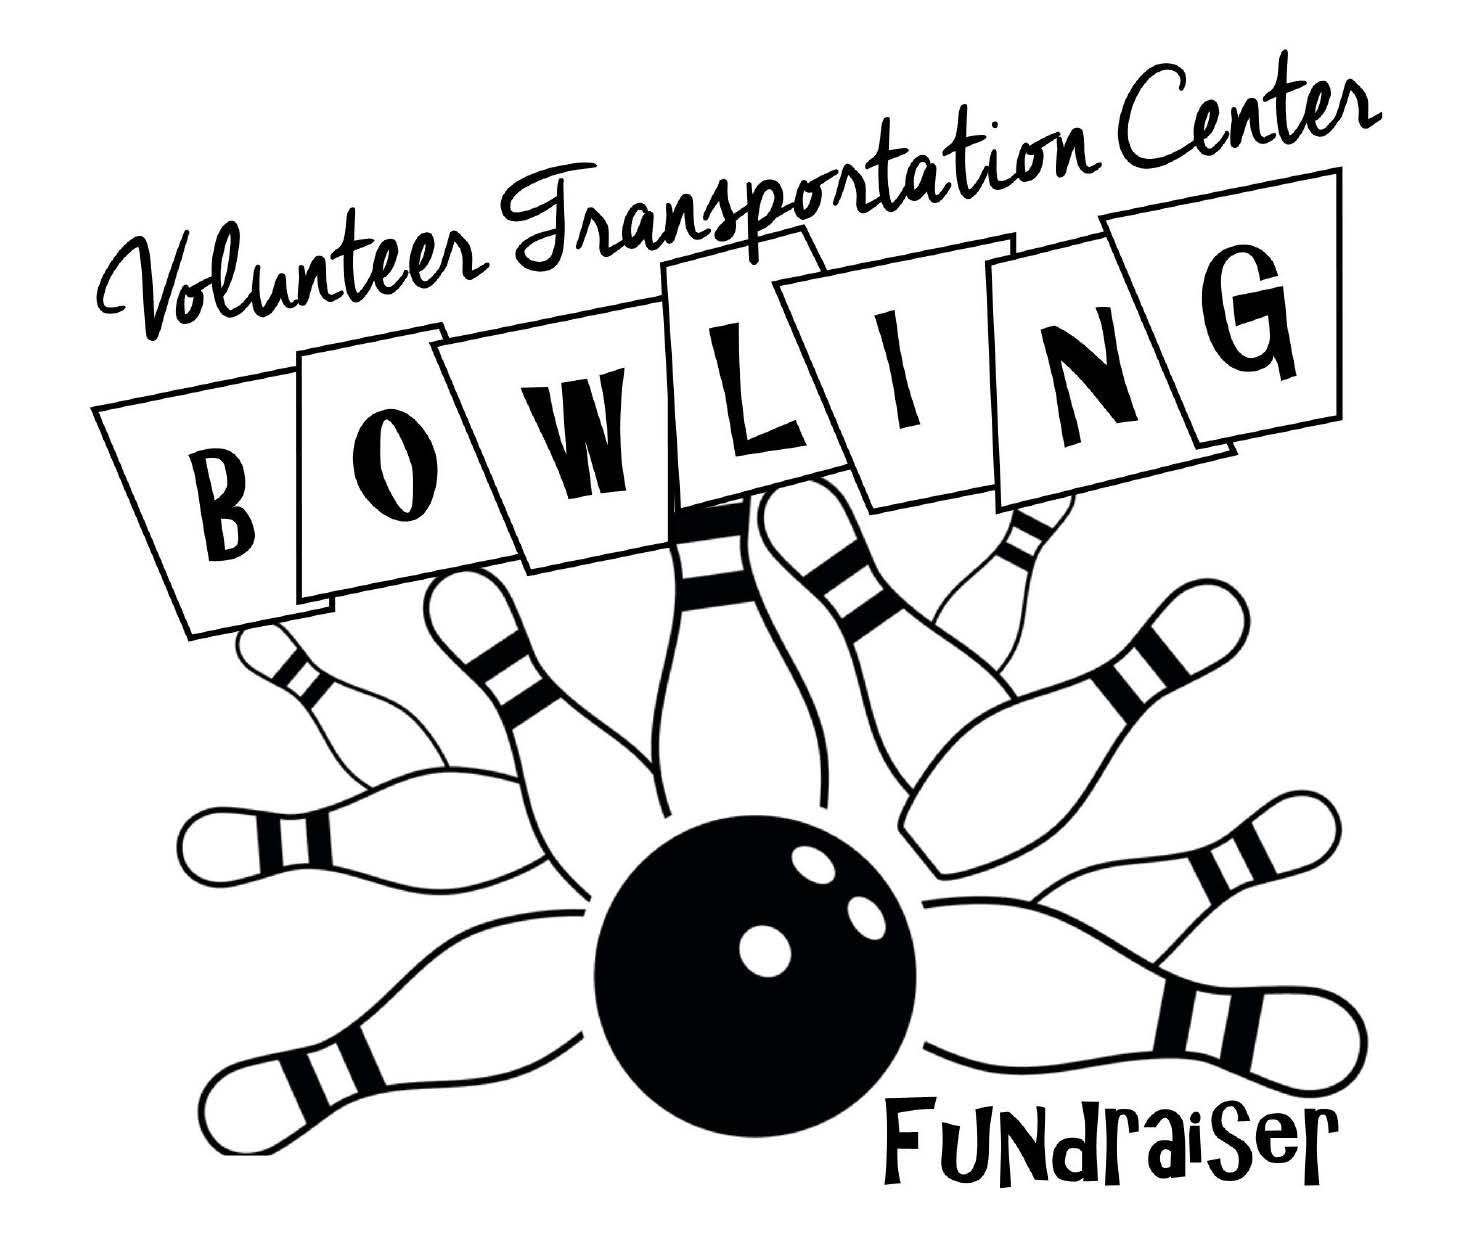 Volunteer Transportation Center Bowling Tournament Postponed